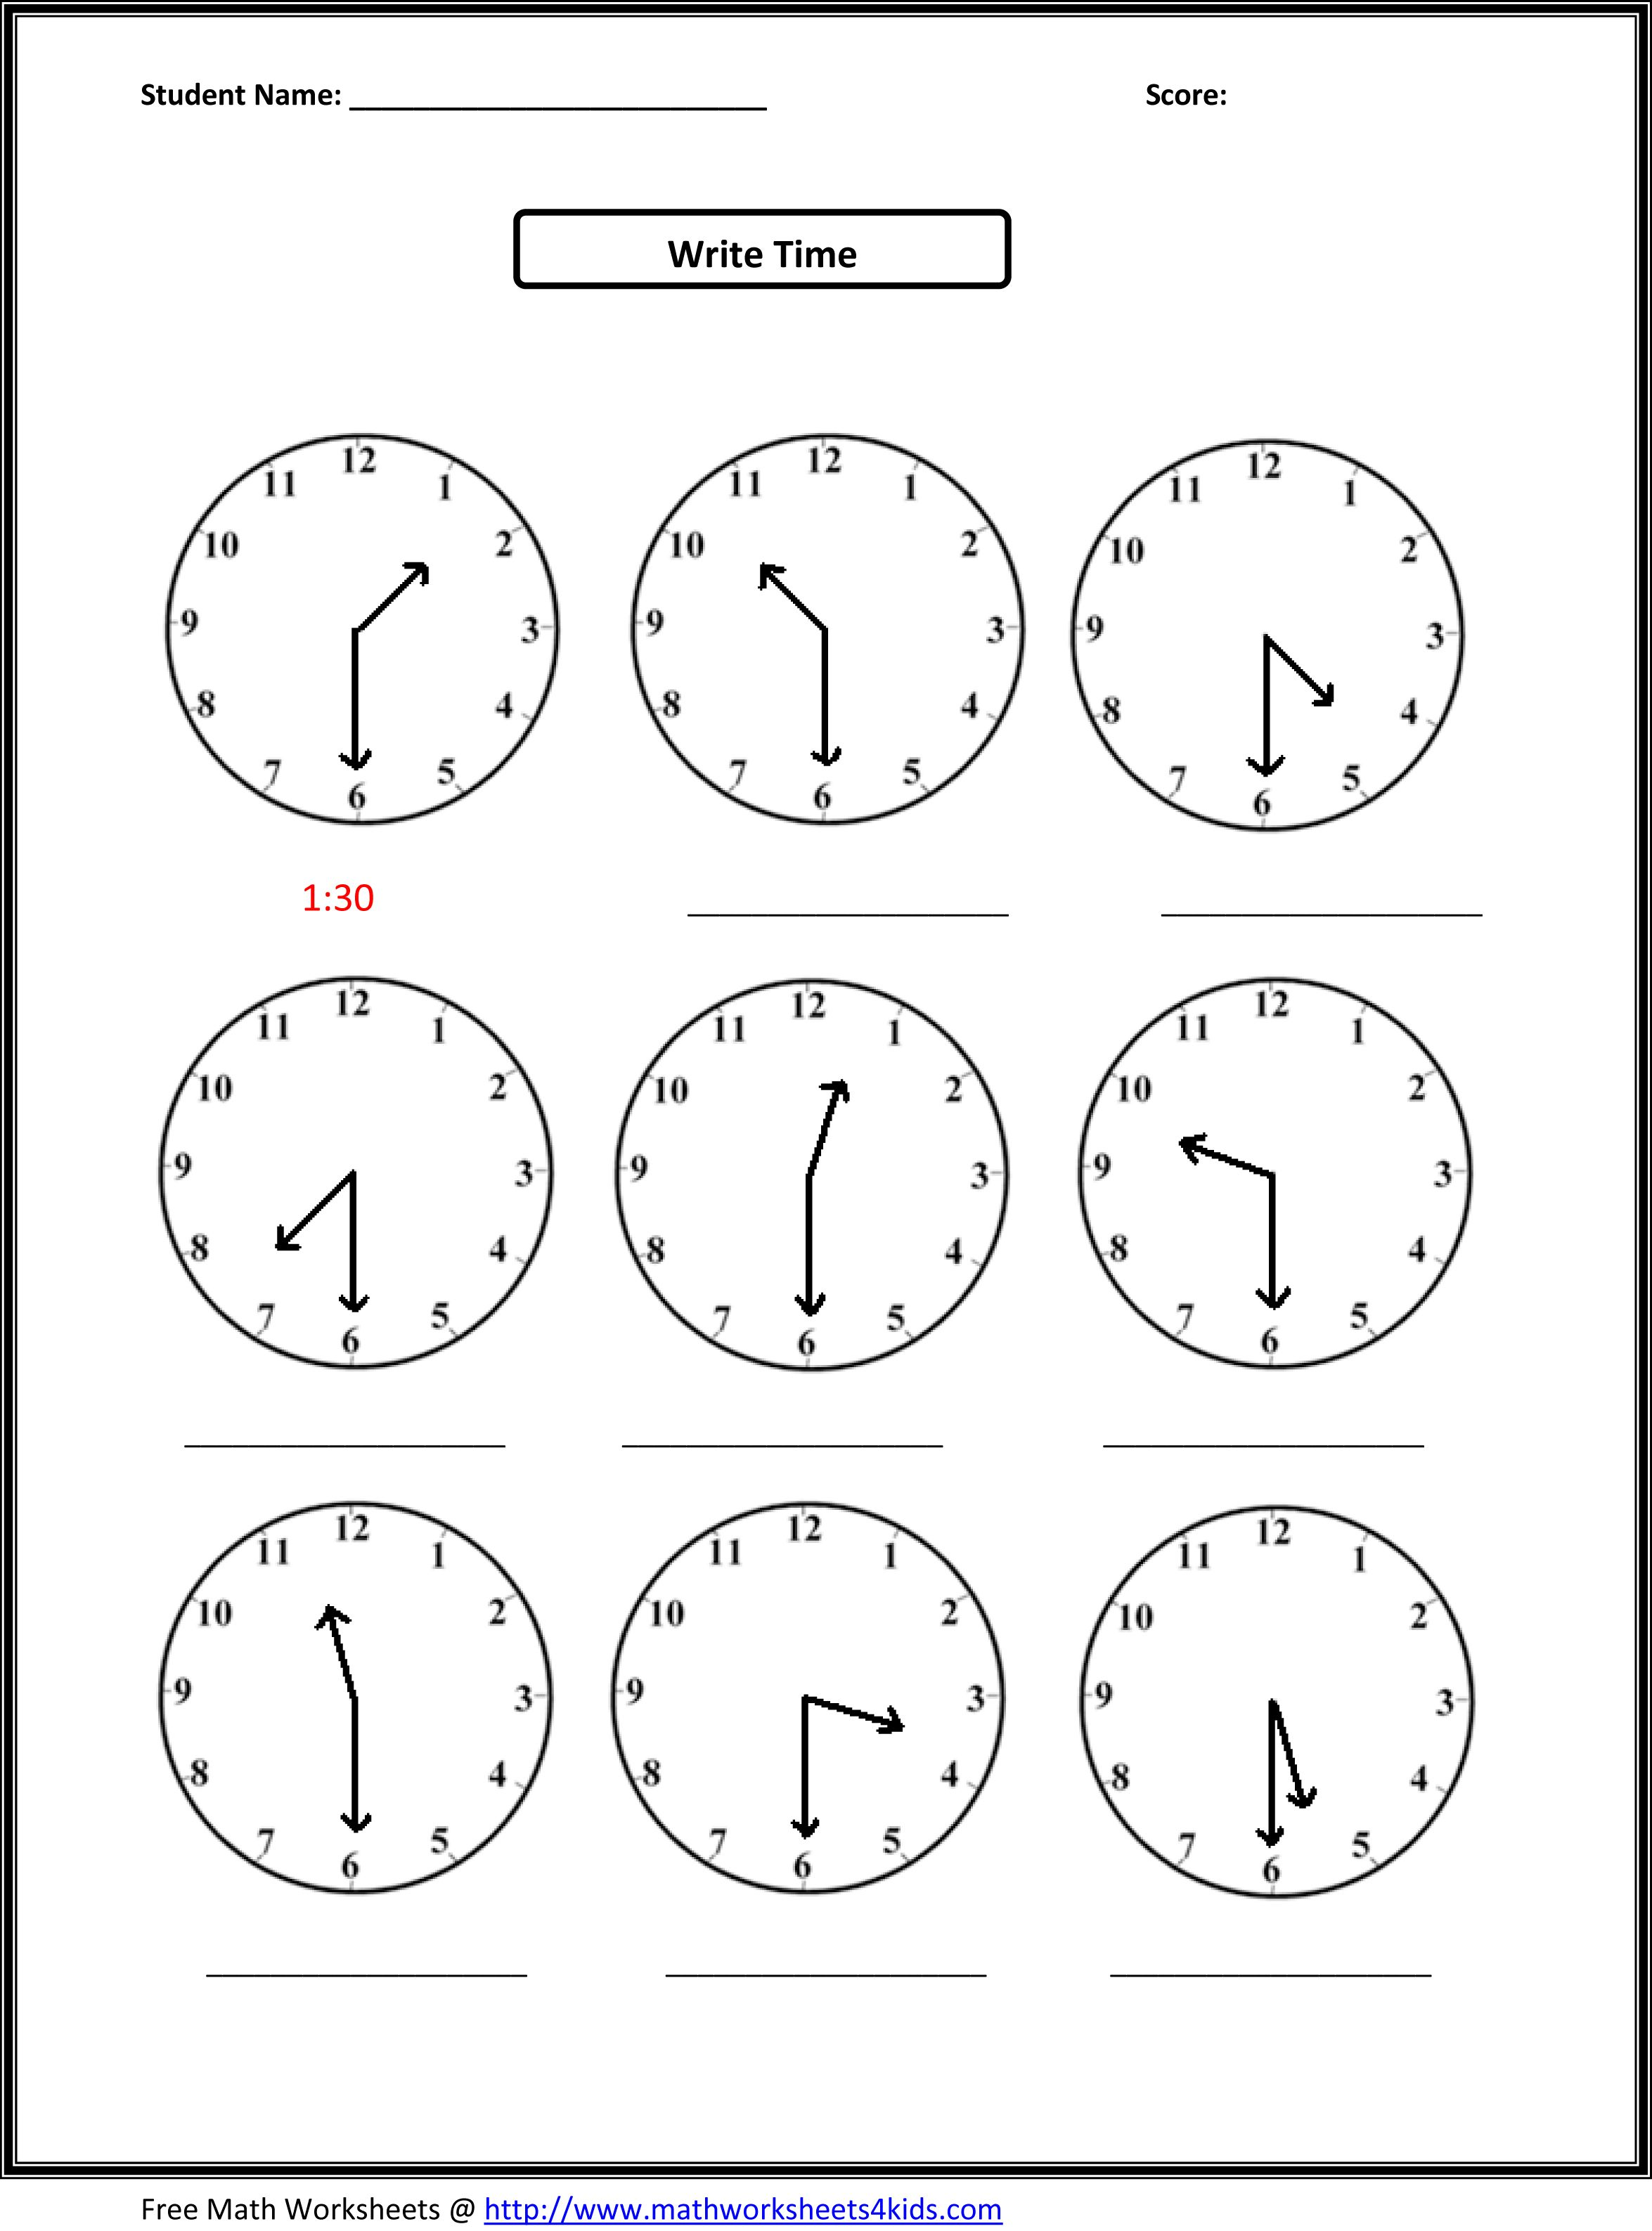 Proatmealus  Remarkable Worksheet On Time For Grade   Reocurent With Hot Free Printable Telling Time Worksheets Nd Grade  Reocurent With Extraordinary My Plate Printable Worksheets Also Egyptian Gods Worksheet In Addition Simplifying Exponents Worksheet Pdf And Writing Worksheets For Th Grade As Well As Contact Movie Worksheet Additionally Kindergarten Addition Worksheets With Pictures From Reocurentcom With Proatmealus  Hot Worksheet On Time For Grade   Reocurent With Extraordinary Free Printable Telling Time Worksheets Nd Grade  Reocurent And Remarkable My Plate Printable Worksheets Also Egyptian Gods Worksheet In Addition Simplifying Exponents Worksheet Pdf From Reocurentcom